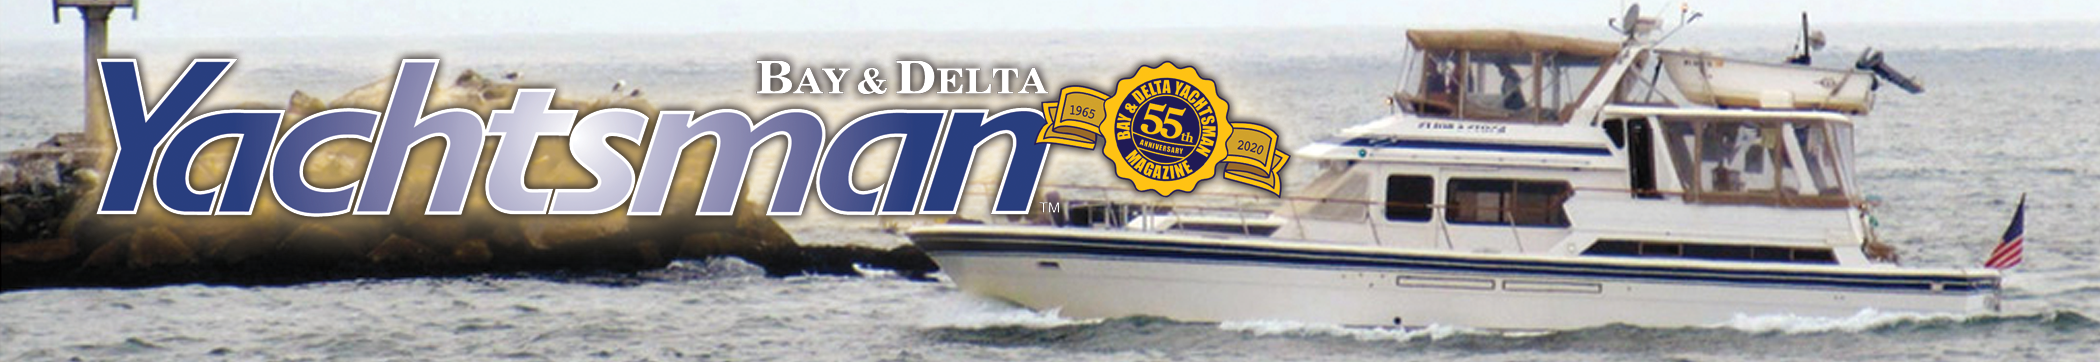 Bay and Delta Yachtsman